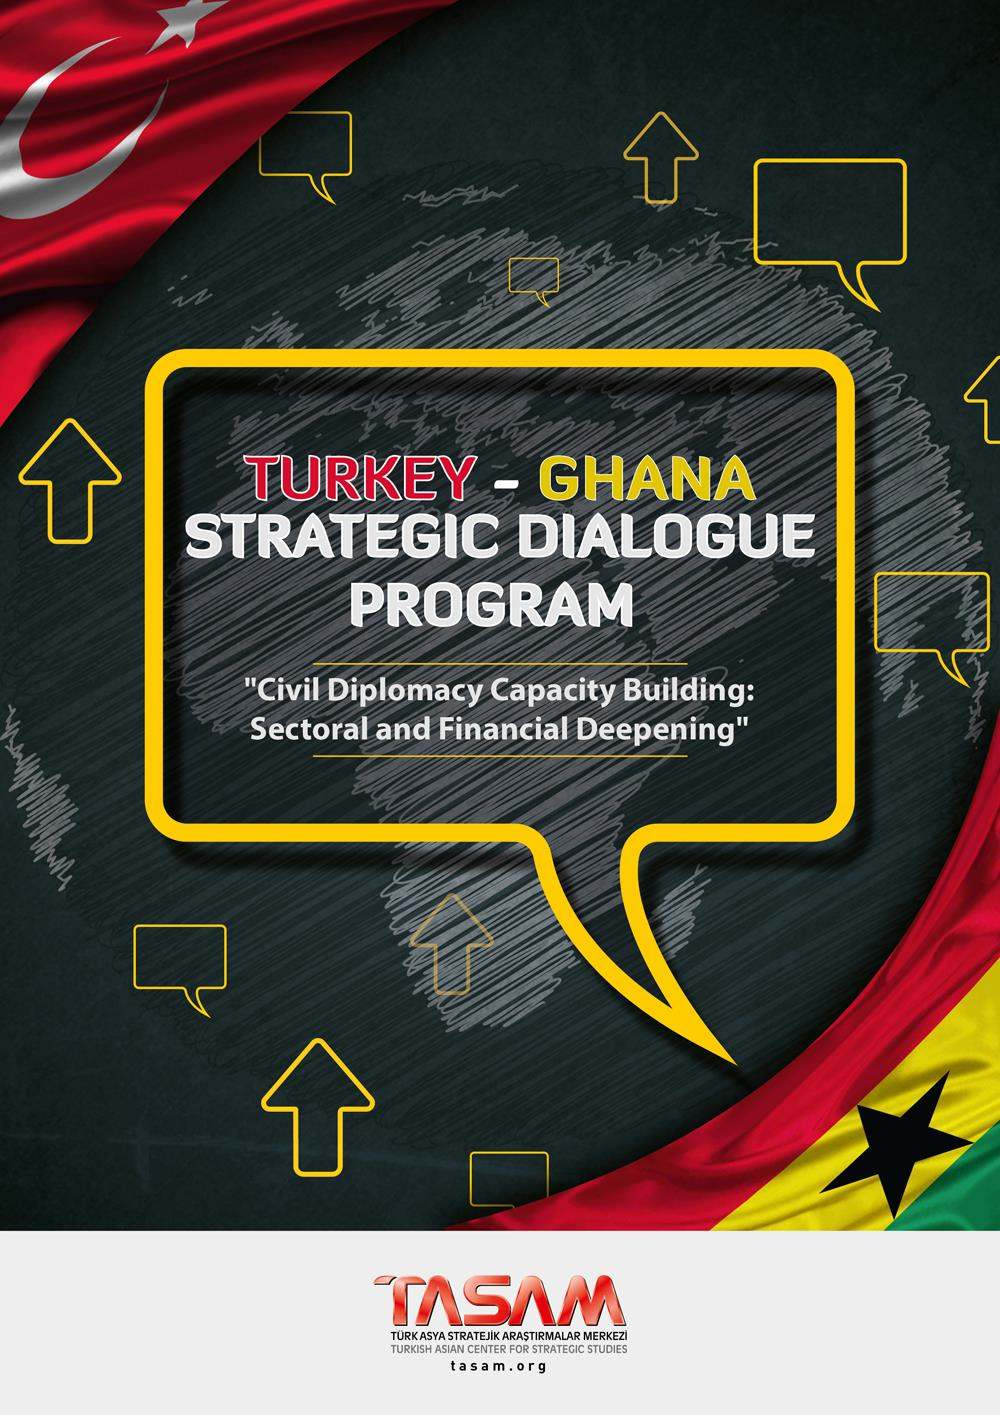 Turkey - Ghana Strategic Dialogue Program